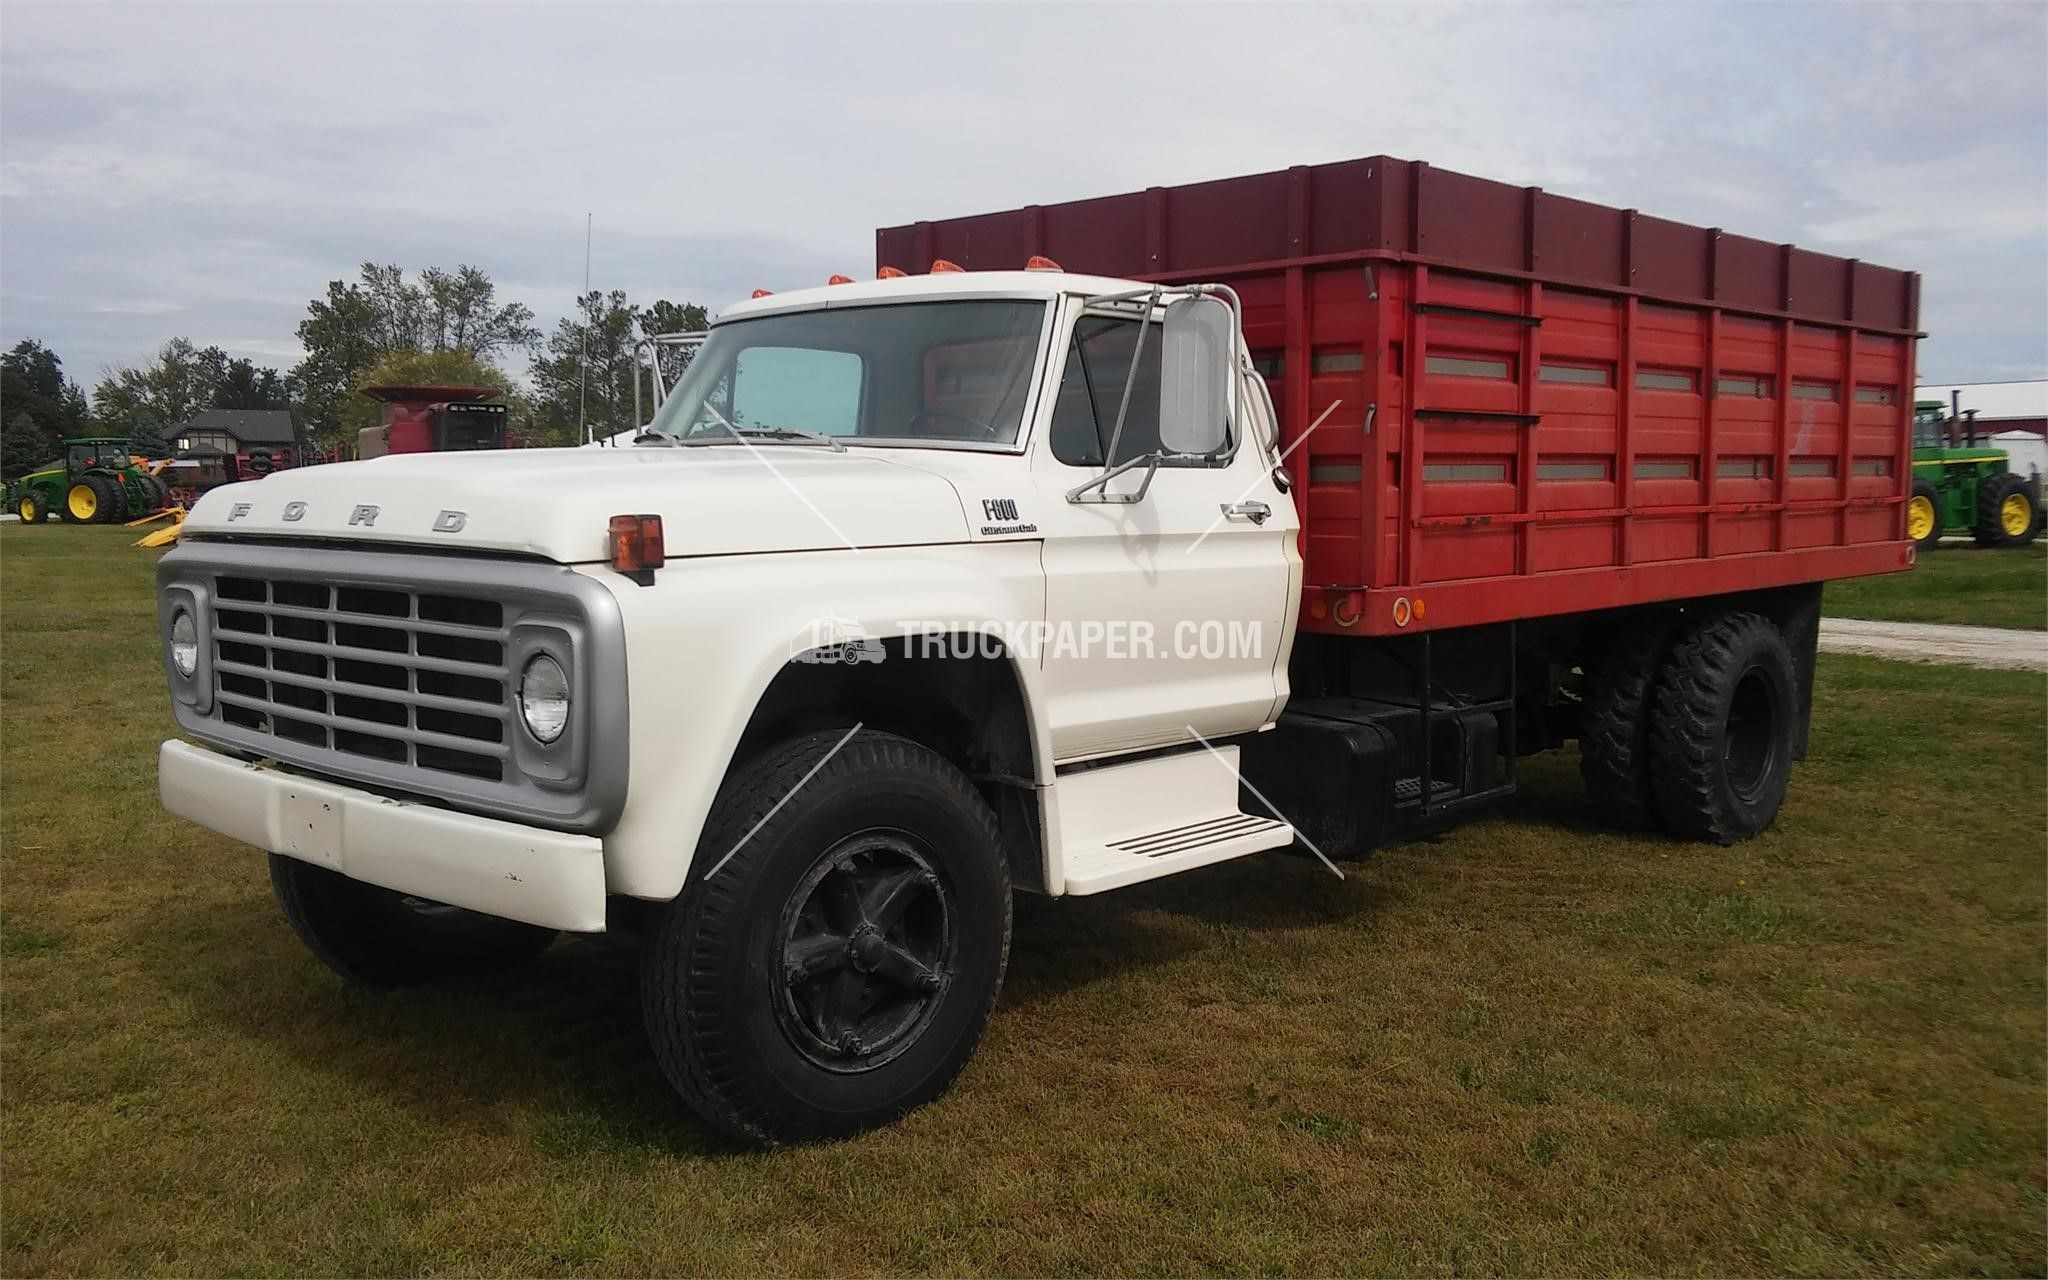 Grain Trucks For Sale >> 1975 Ford F600 Medium Duty Trucks Farm Trucks Grain Trucks For